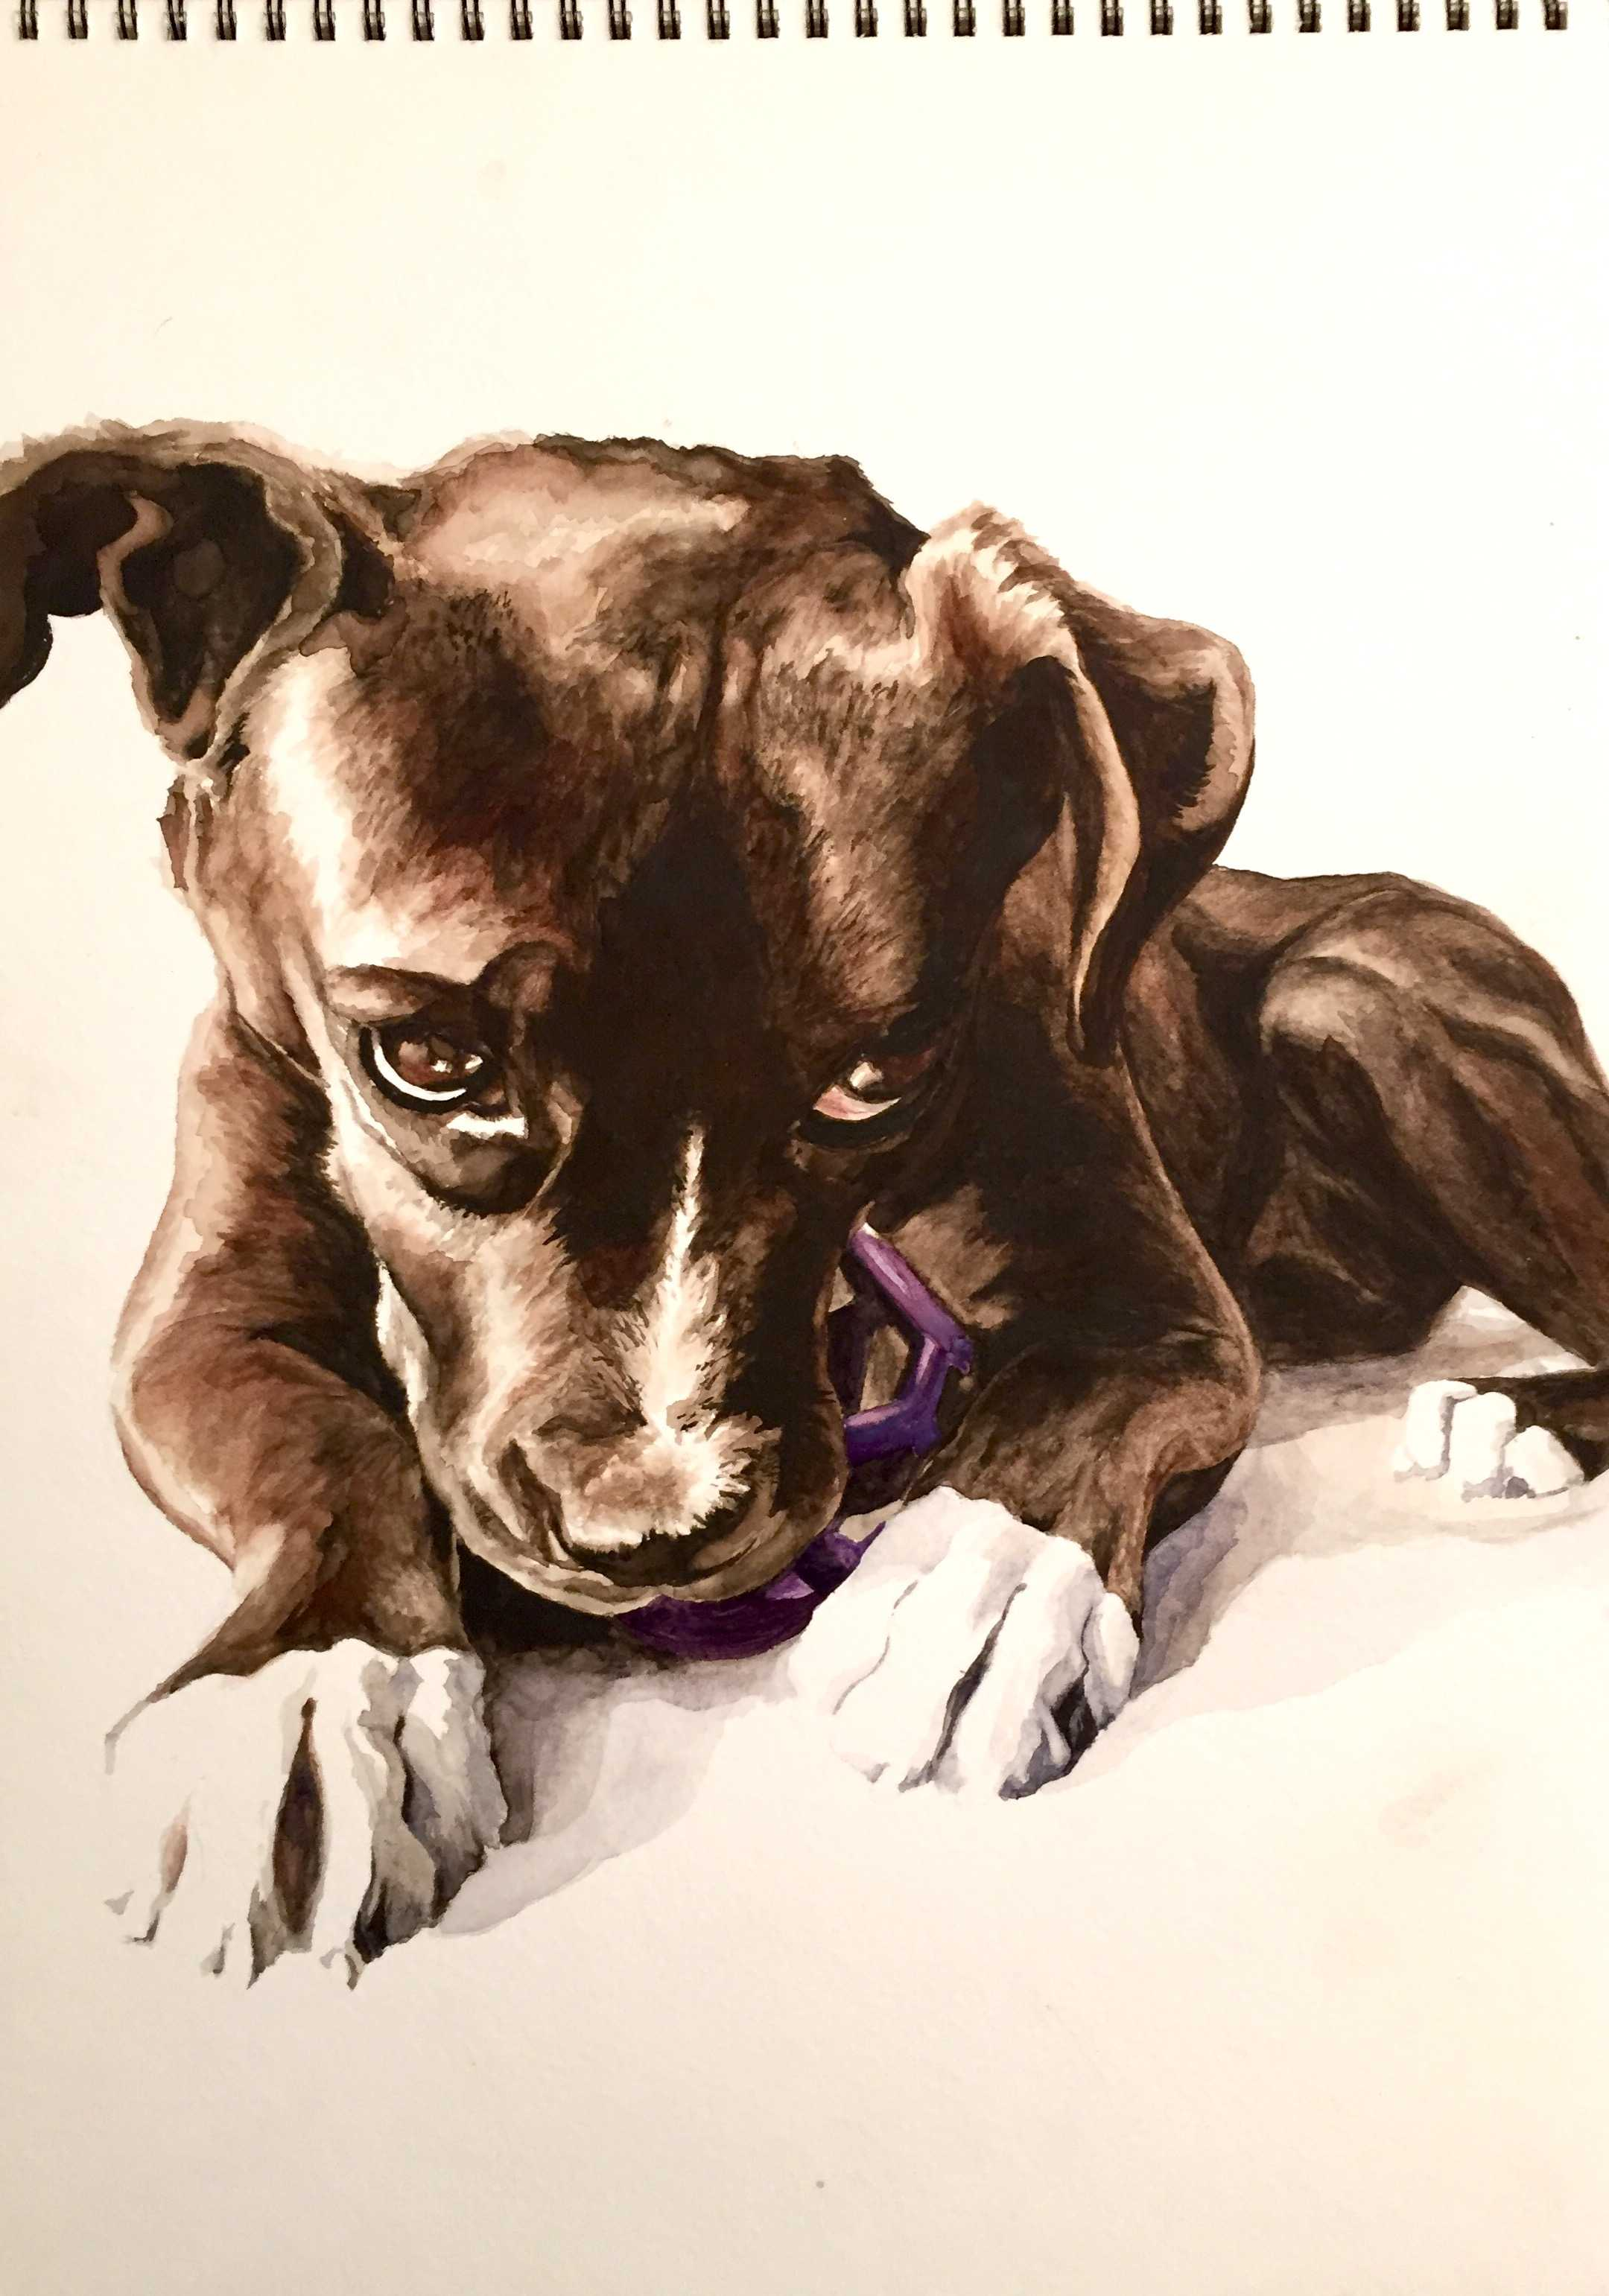 Mrs. Davidson's painting of her dog, Toby